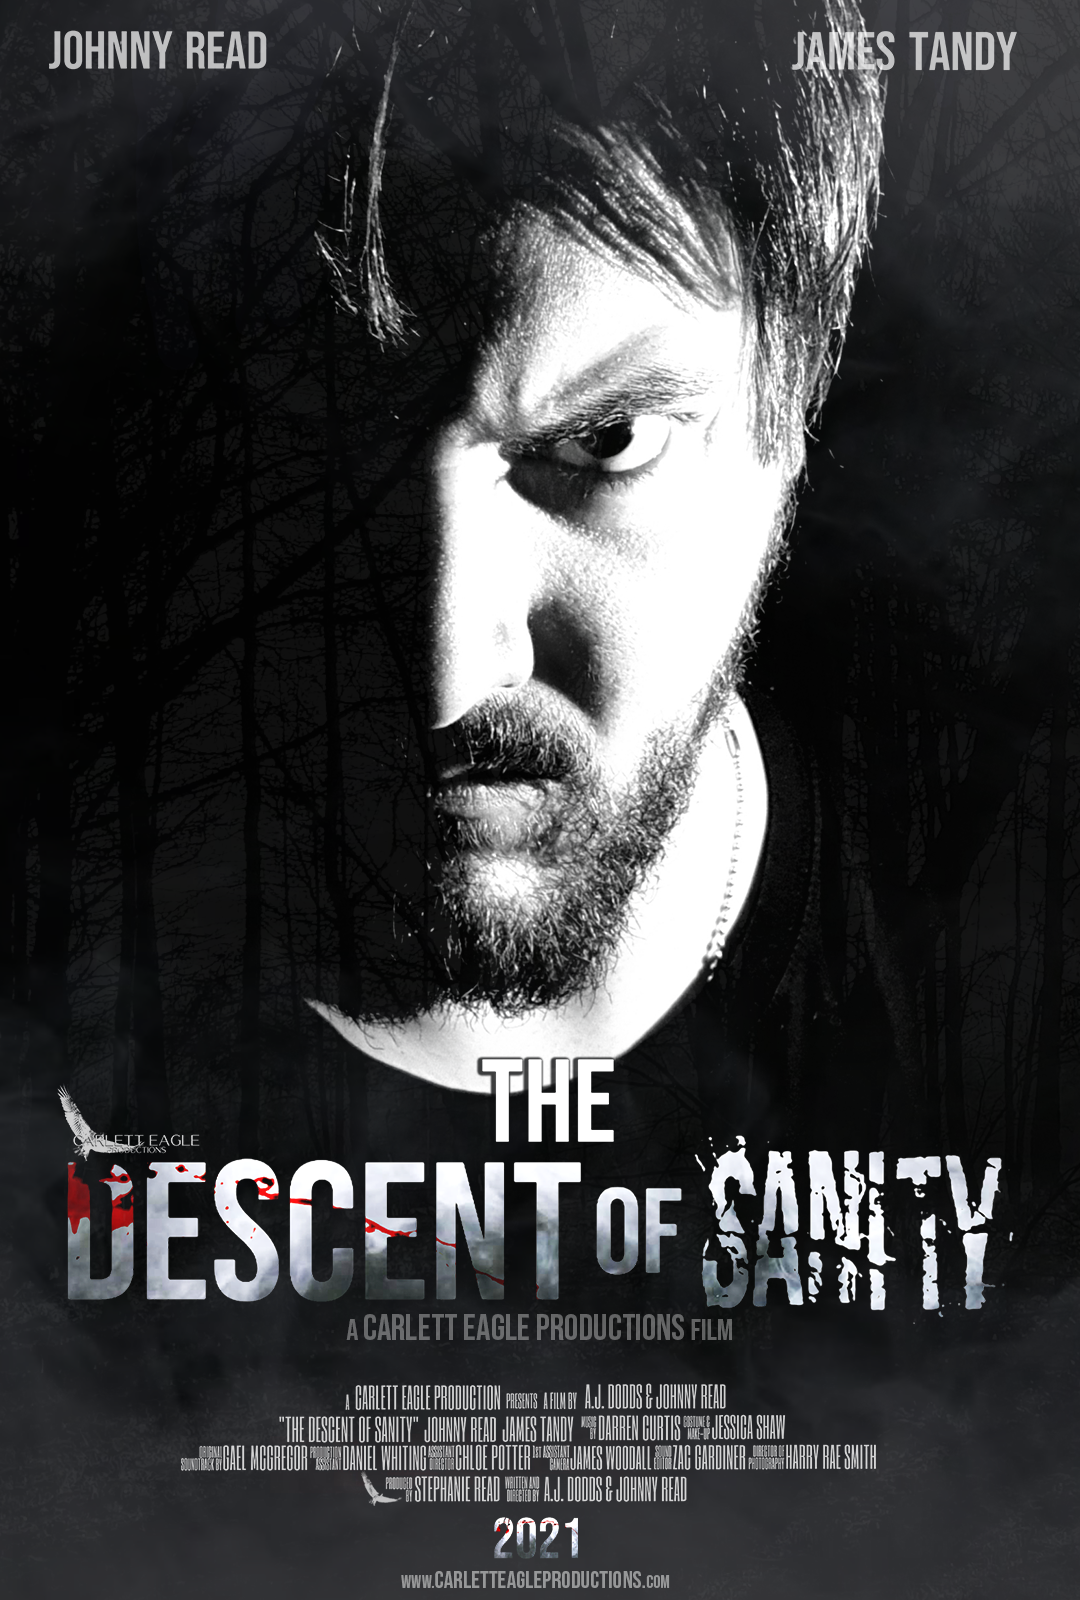 The Descent of Sanity Poster - Johnny Read as DS Steven Lee